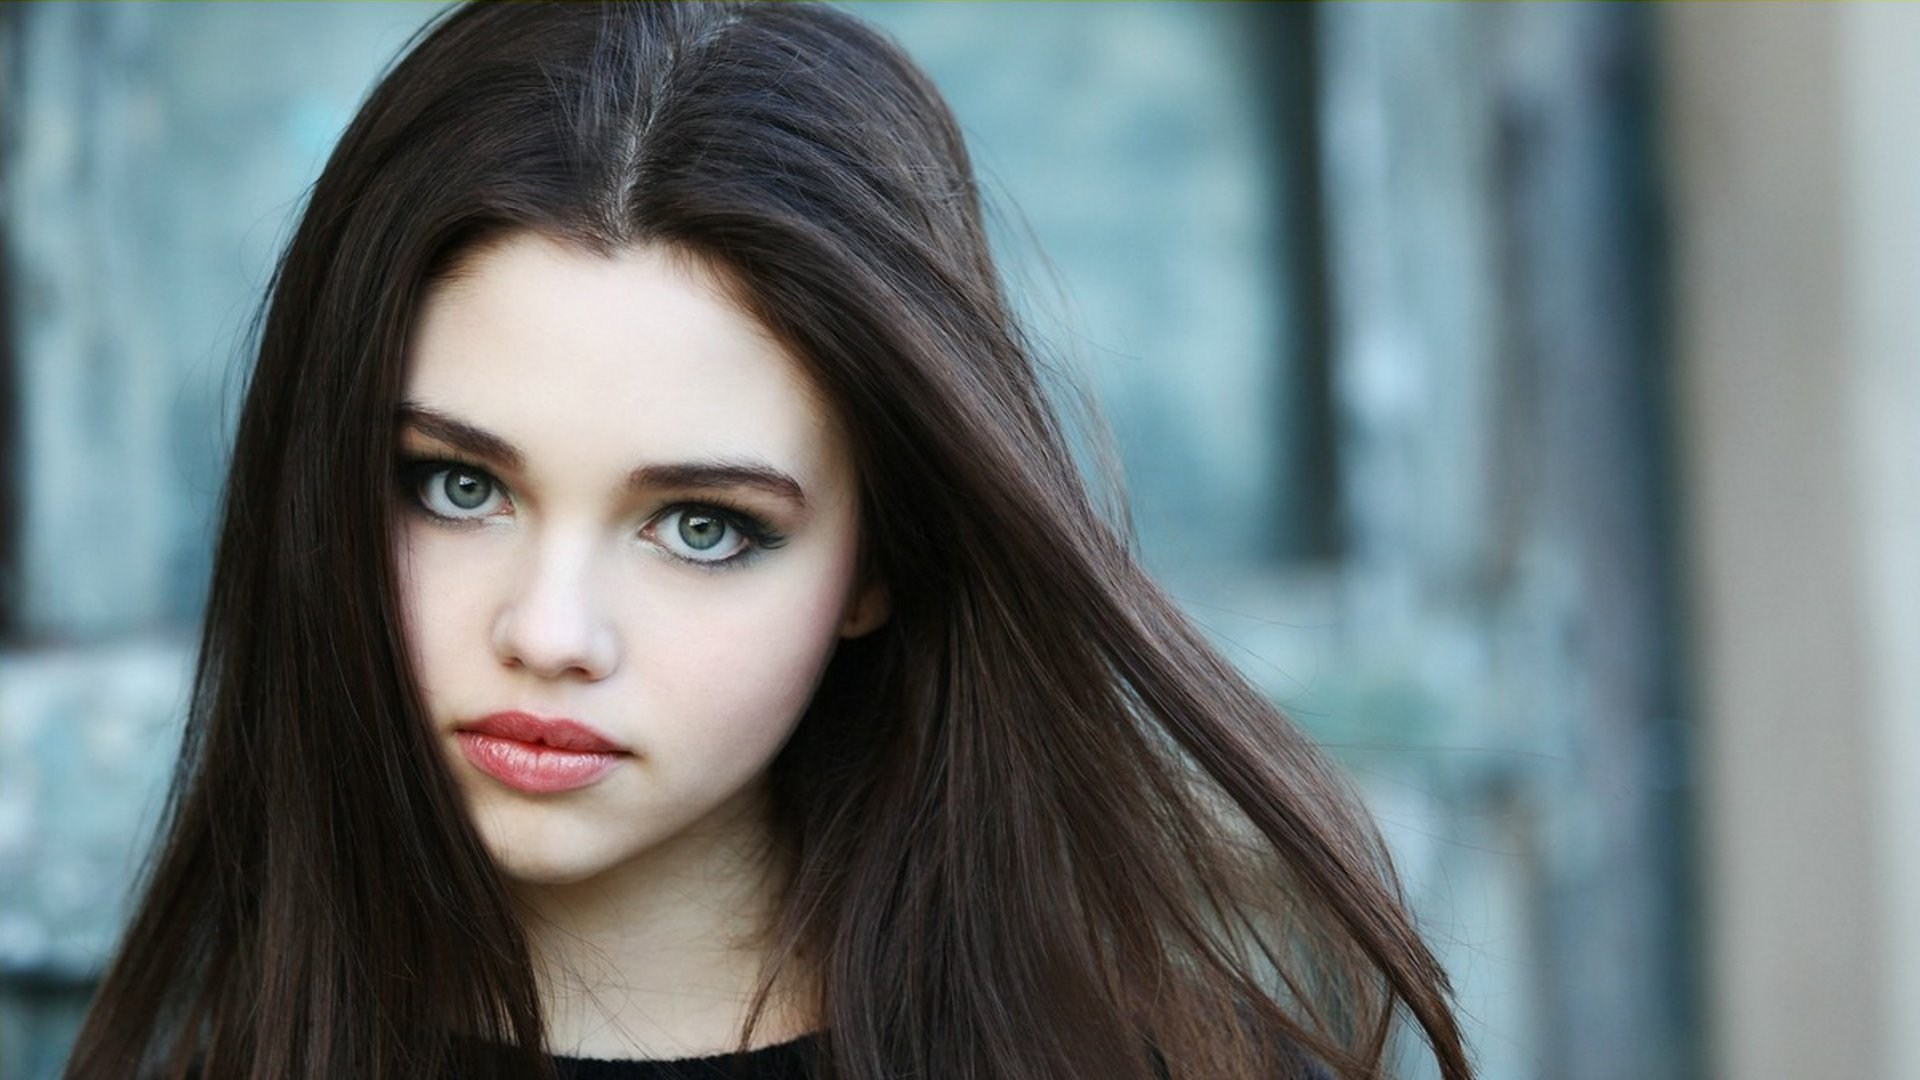 Beautiful Girl Wallpaper - HD Wallpapers Backgrounds of Your Choice